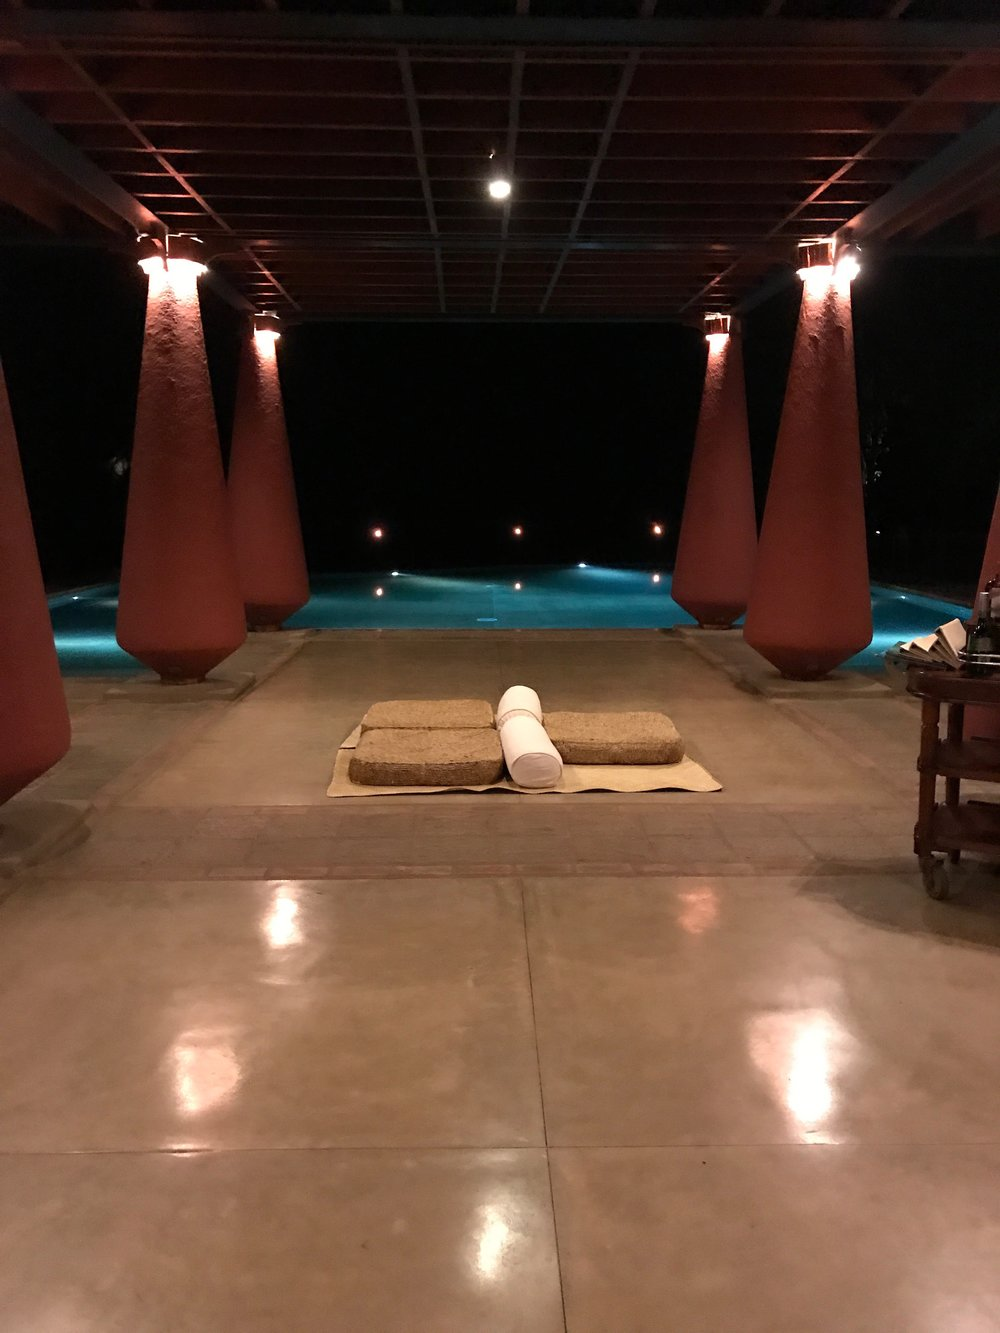 invite-to-paradise-maldives-sri-lanka-specialists-experts-travel-agent-tour-operator-customer-feedback-lucas-emily-fenning-elephant-orphanage-vil-uyana-pool.jpg